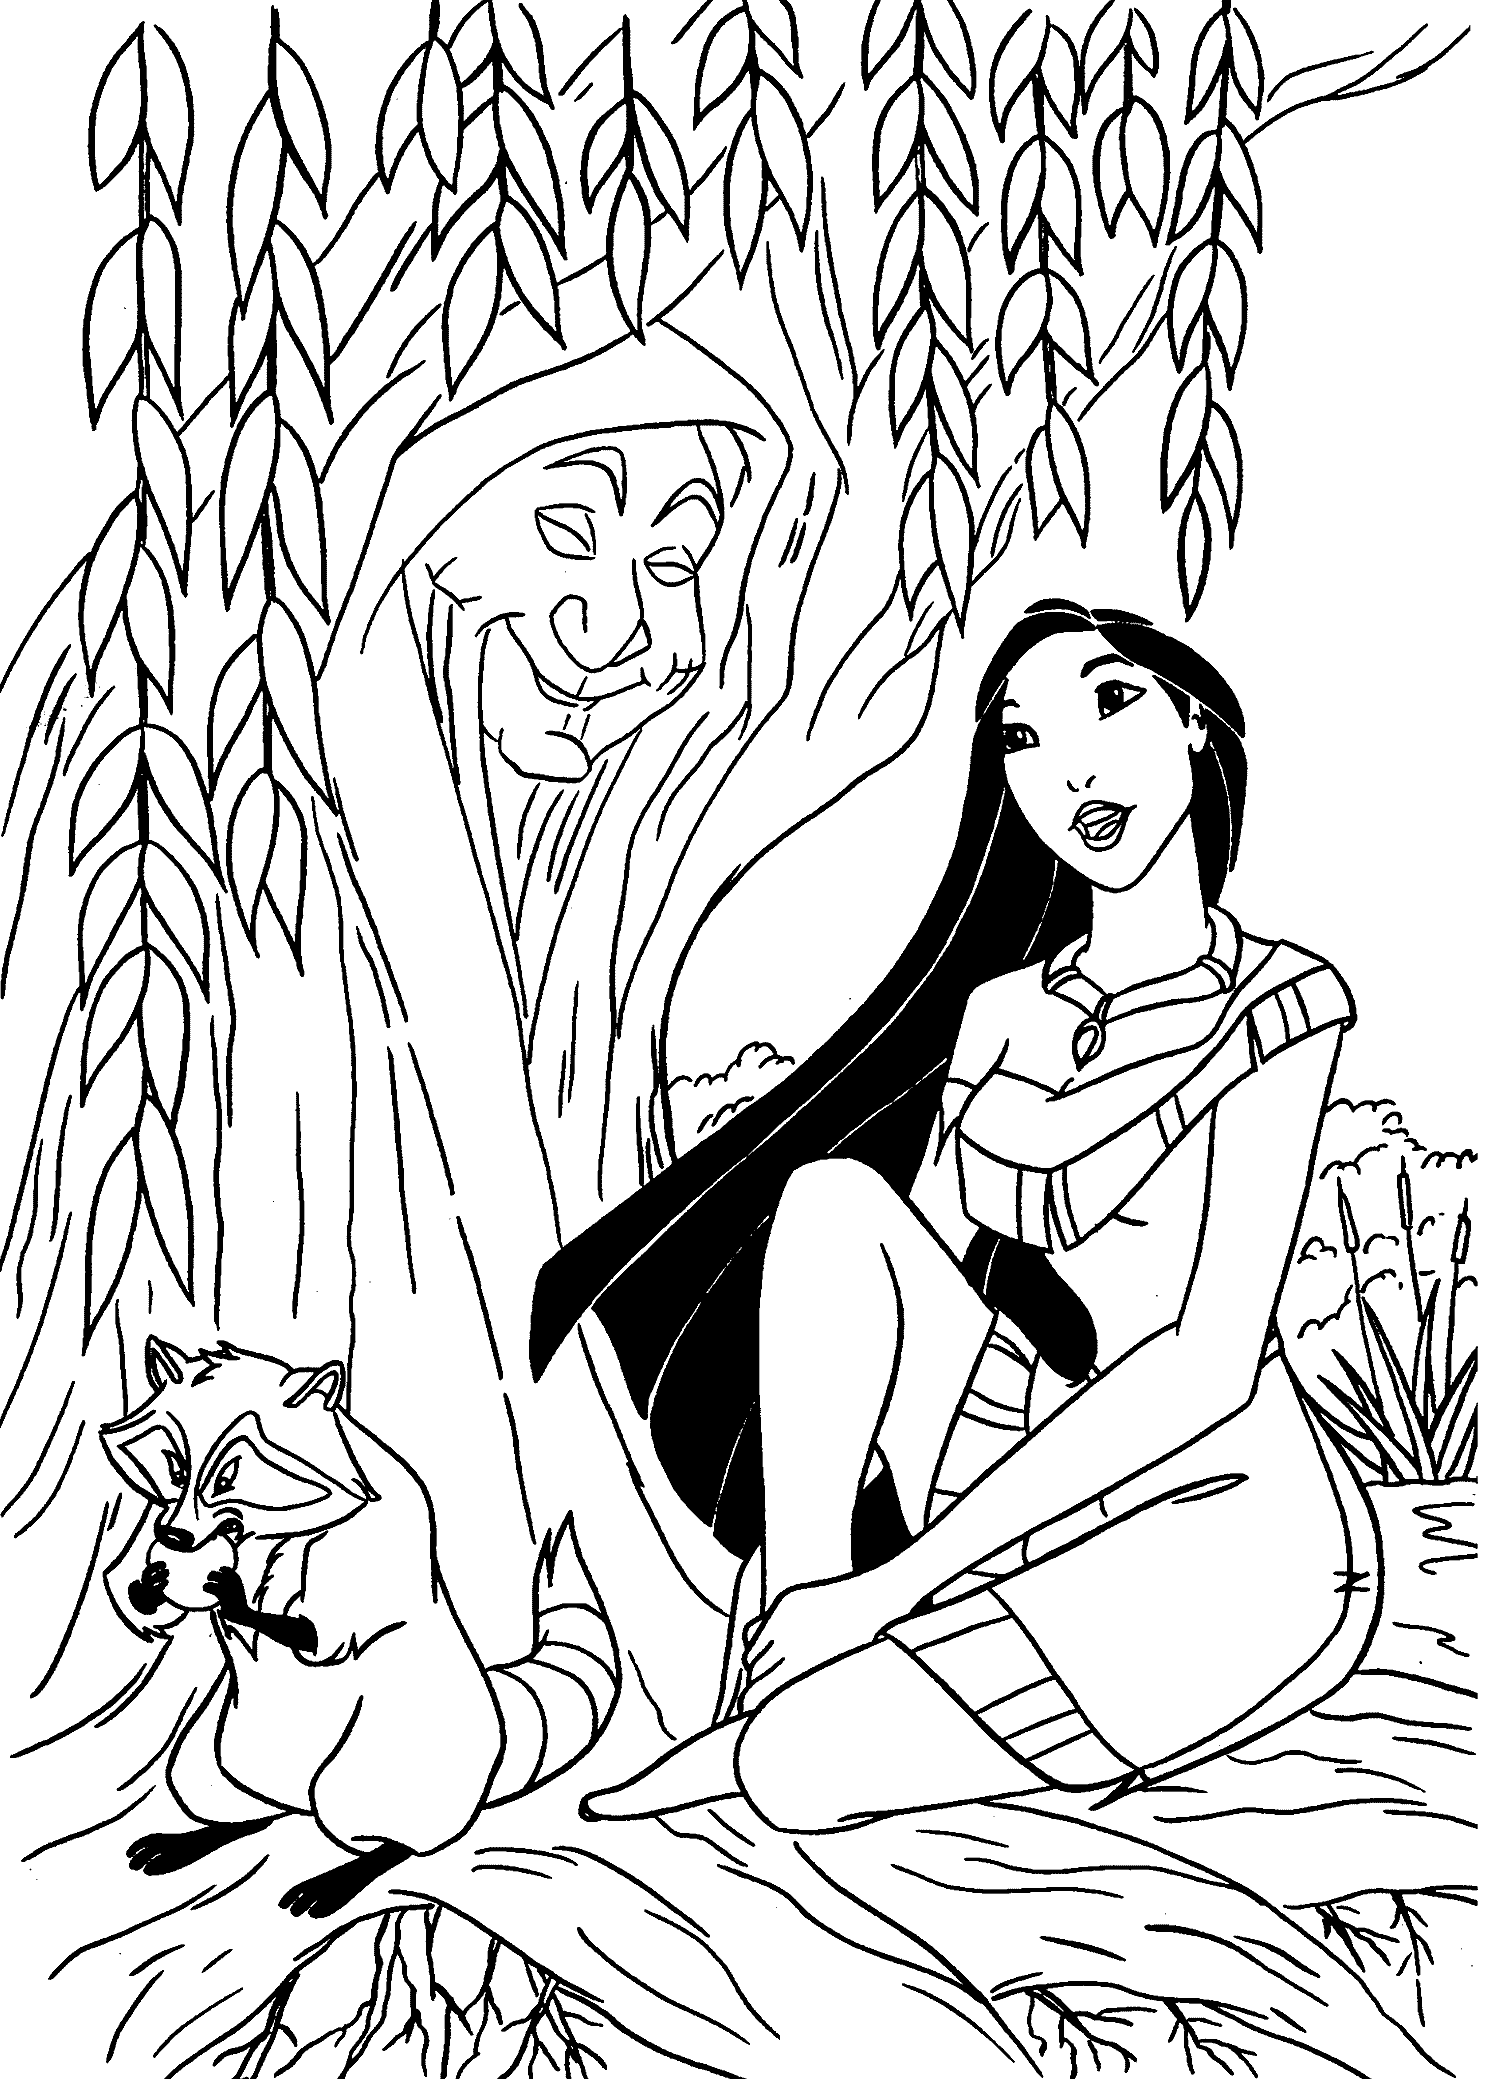 Pocahontas Coloring Page with Meeko Raccoon and Grandmother Willow Weeping Willow Tree